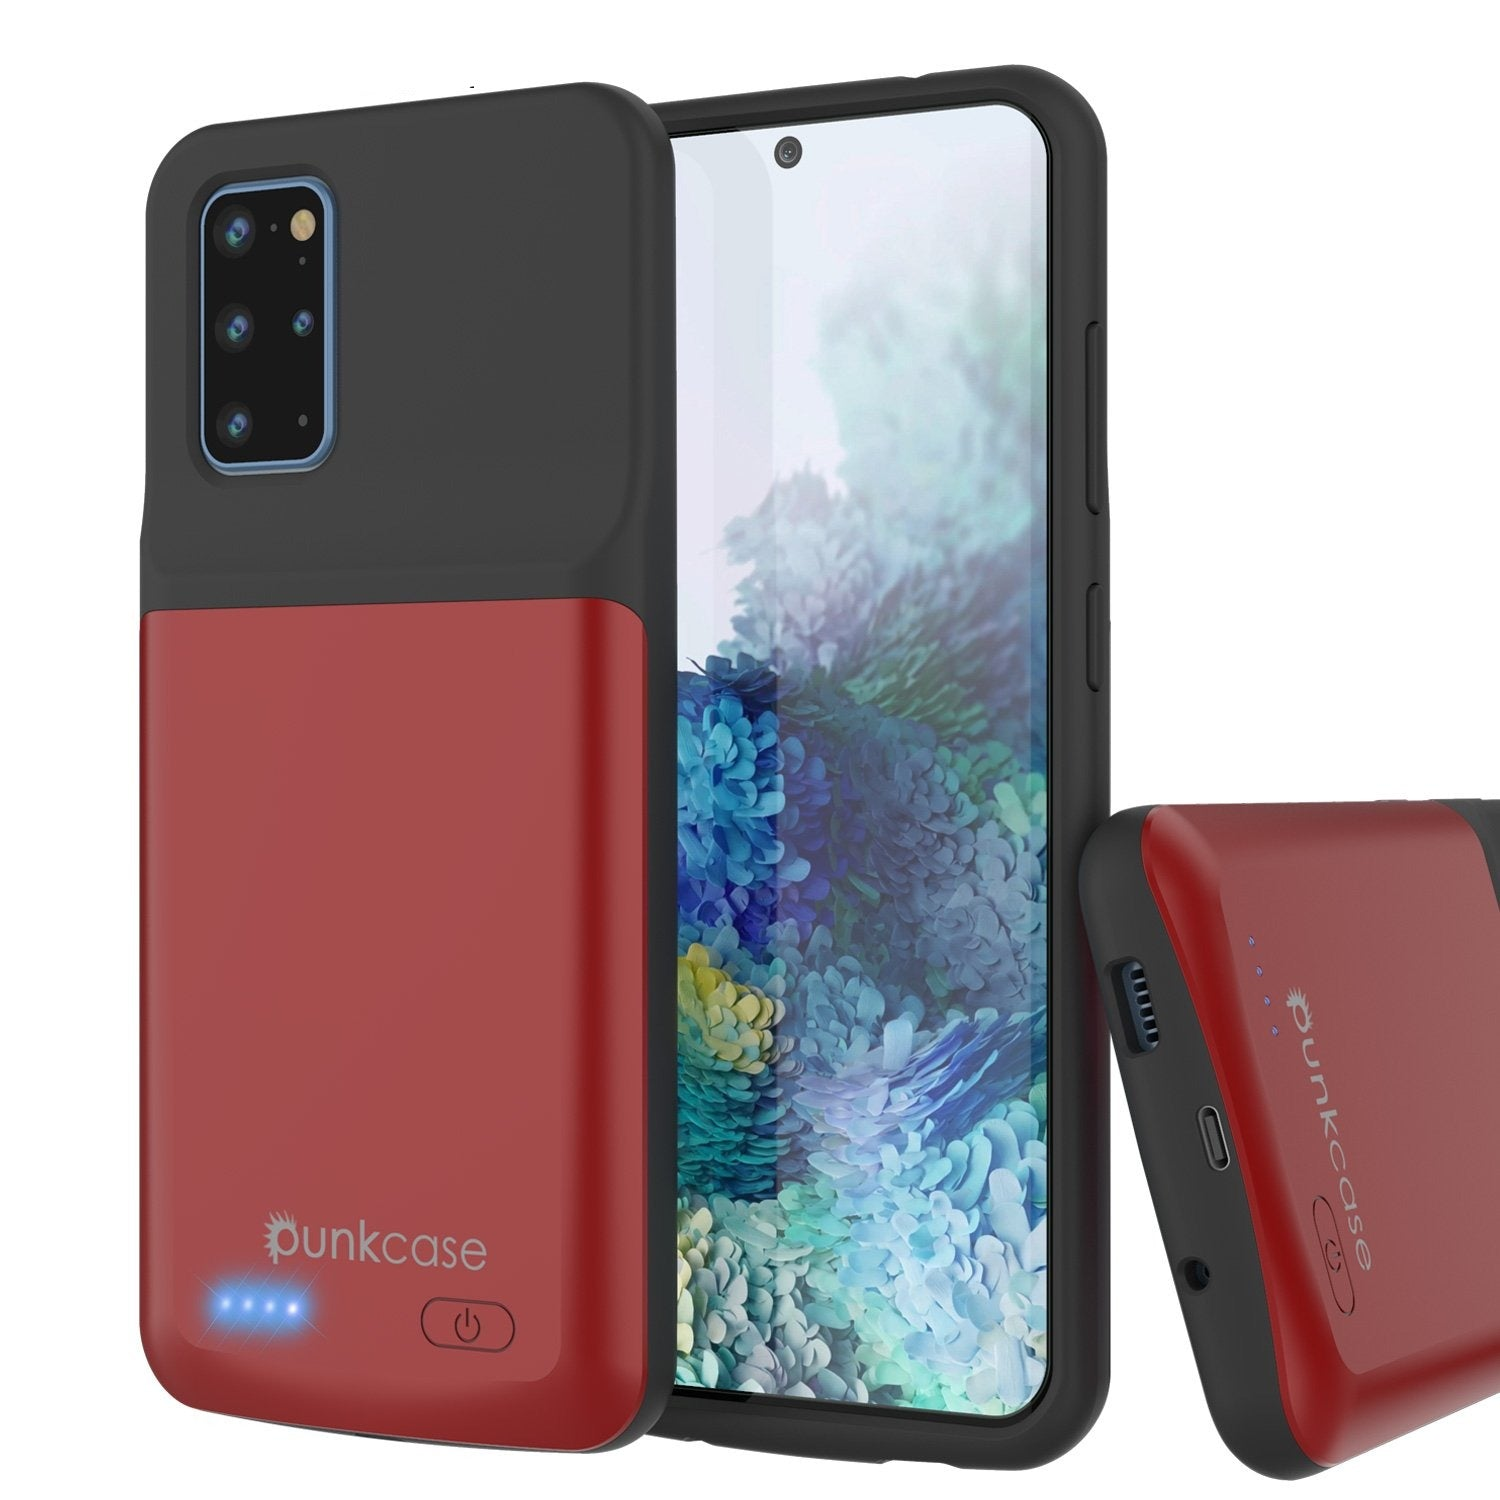 PunkJuice S20+ Plus Battery Case Red - Fast Charging Power Juice Bank with 6000mAh